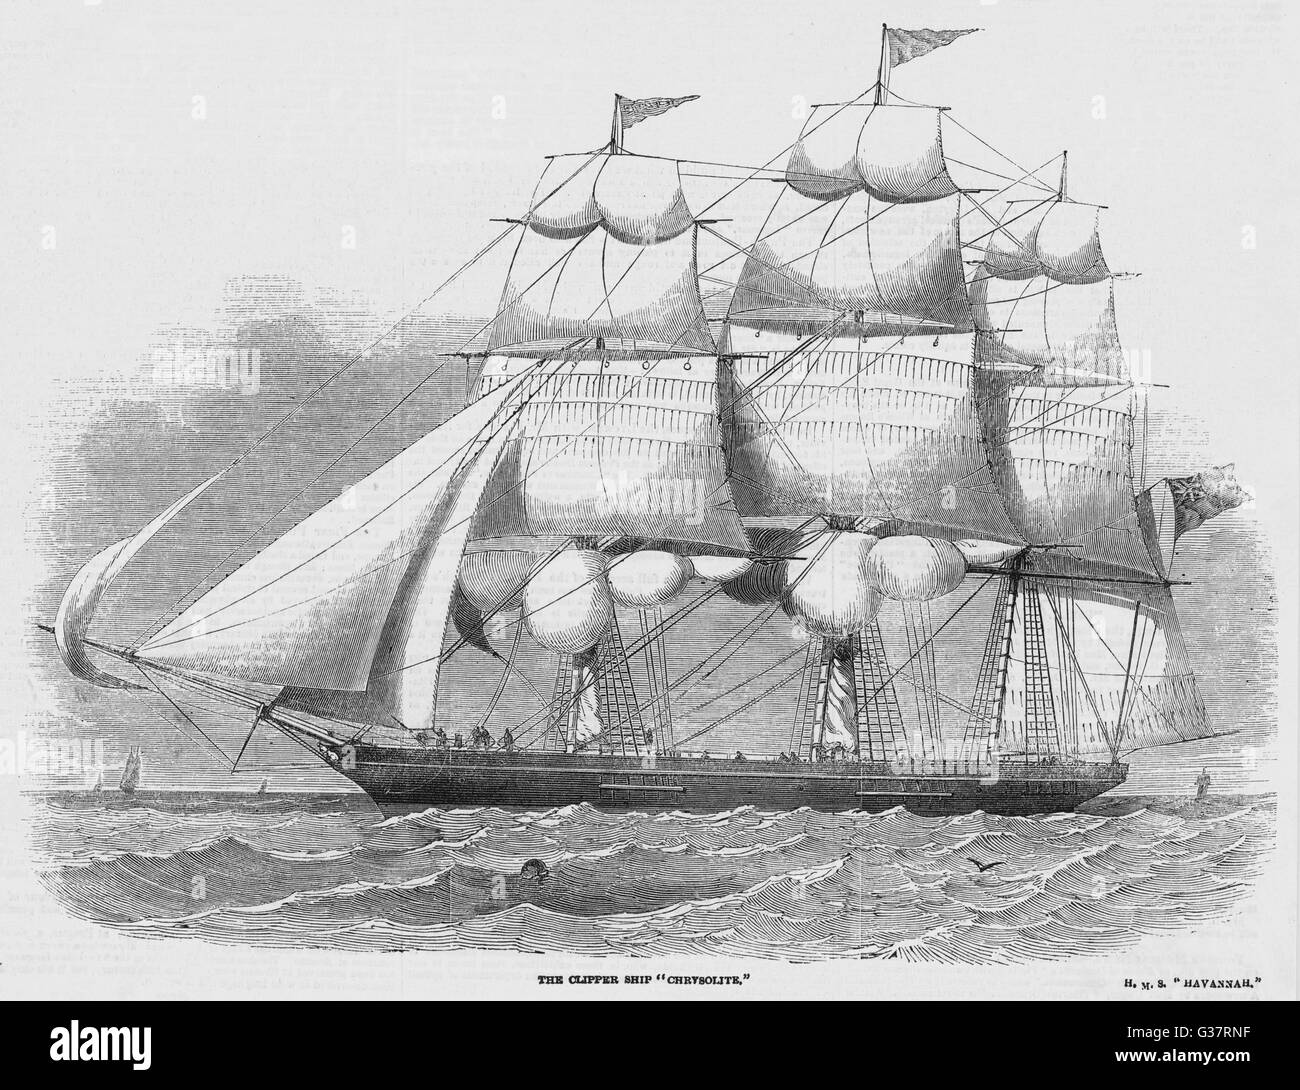 Sailing clipper          Date: 1852 - Stock Image